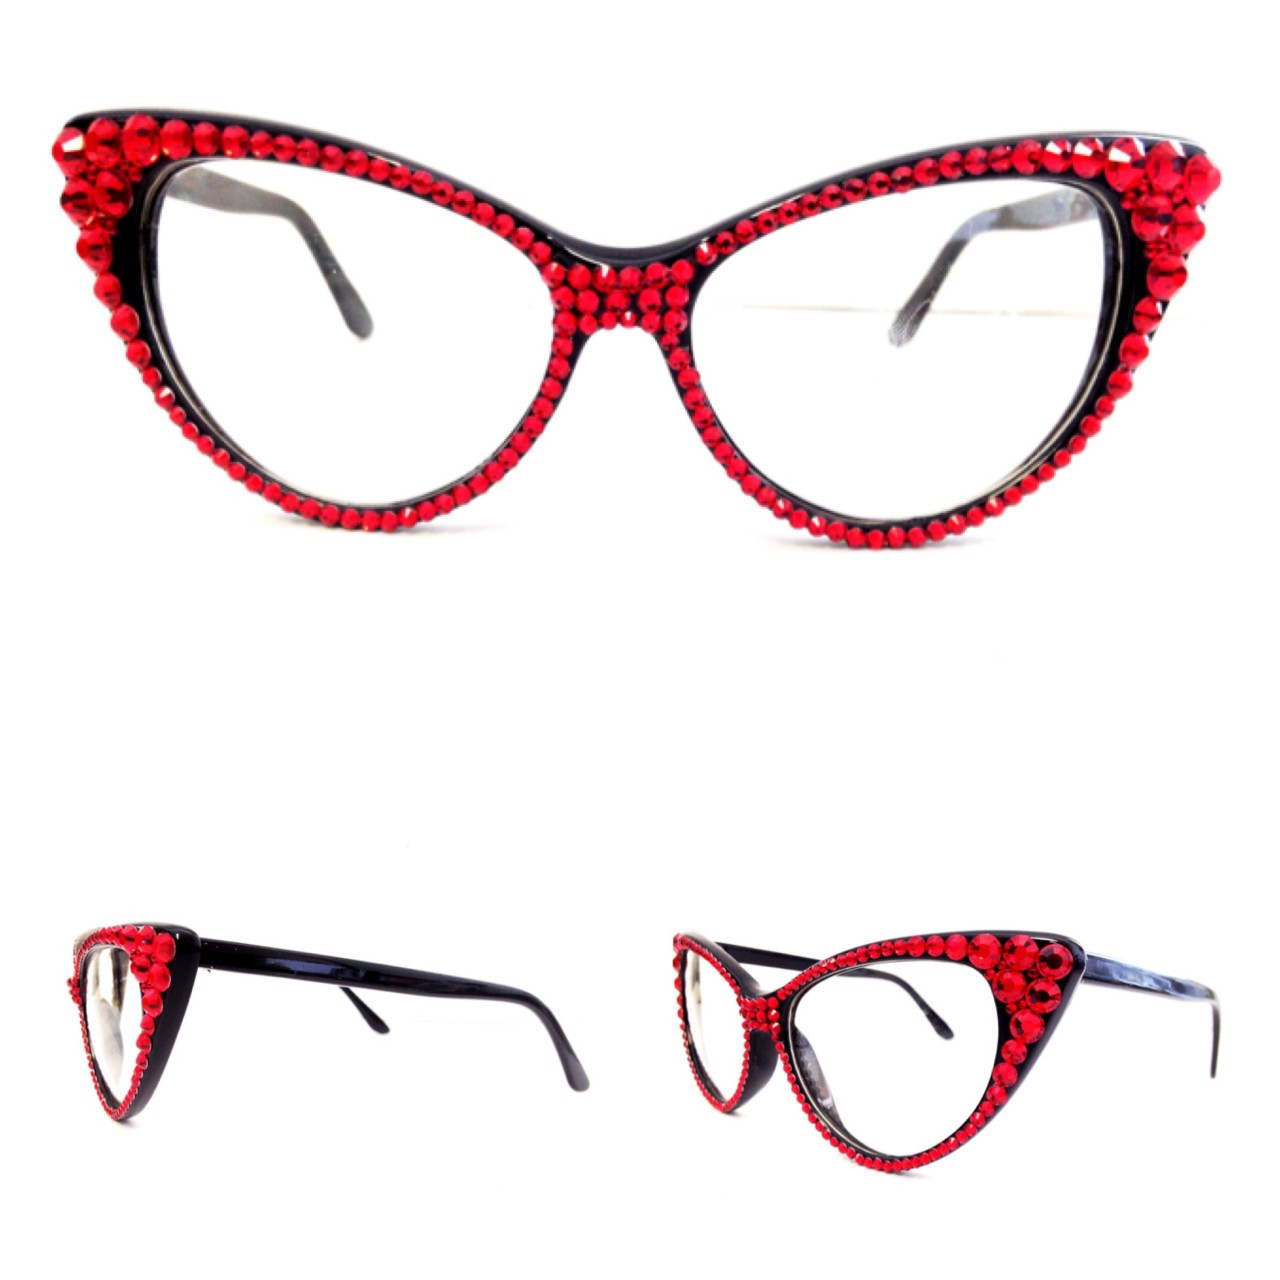 a491b43d09be4 Optical CRYSTAL Cat Eye Glasses - Red on Black Frame - Divalicious ...